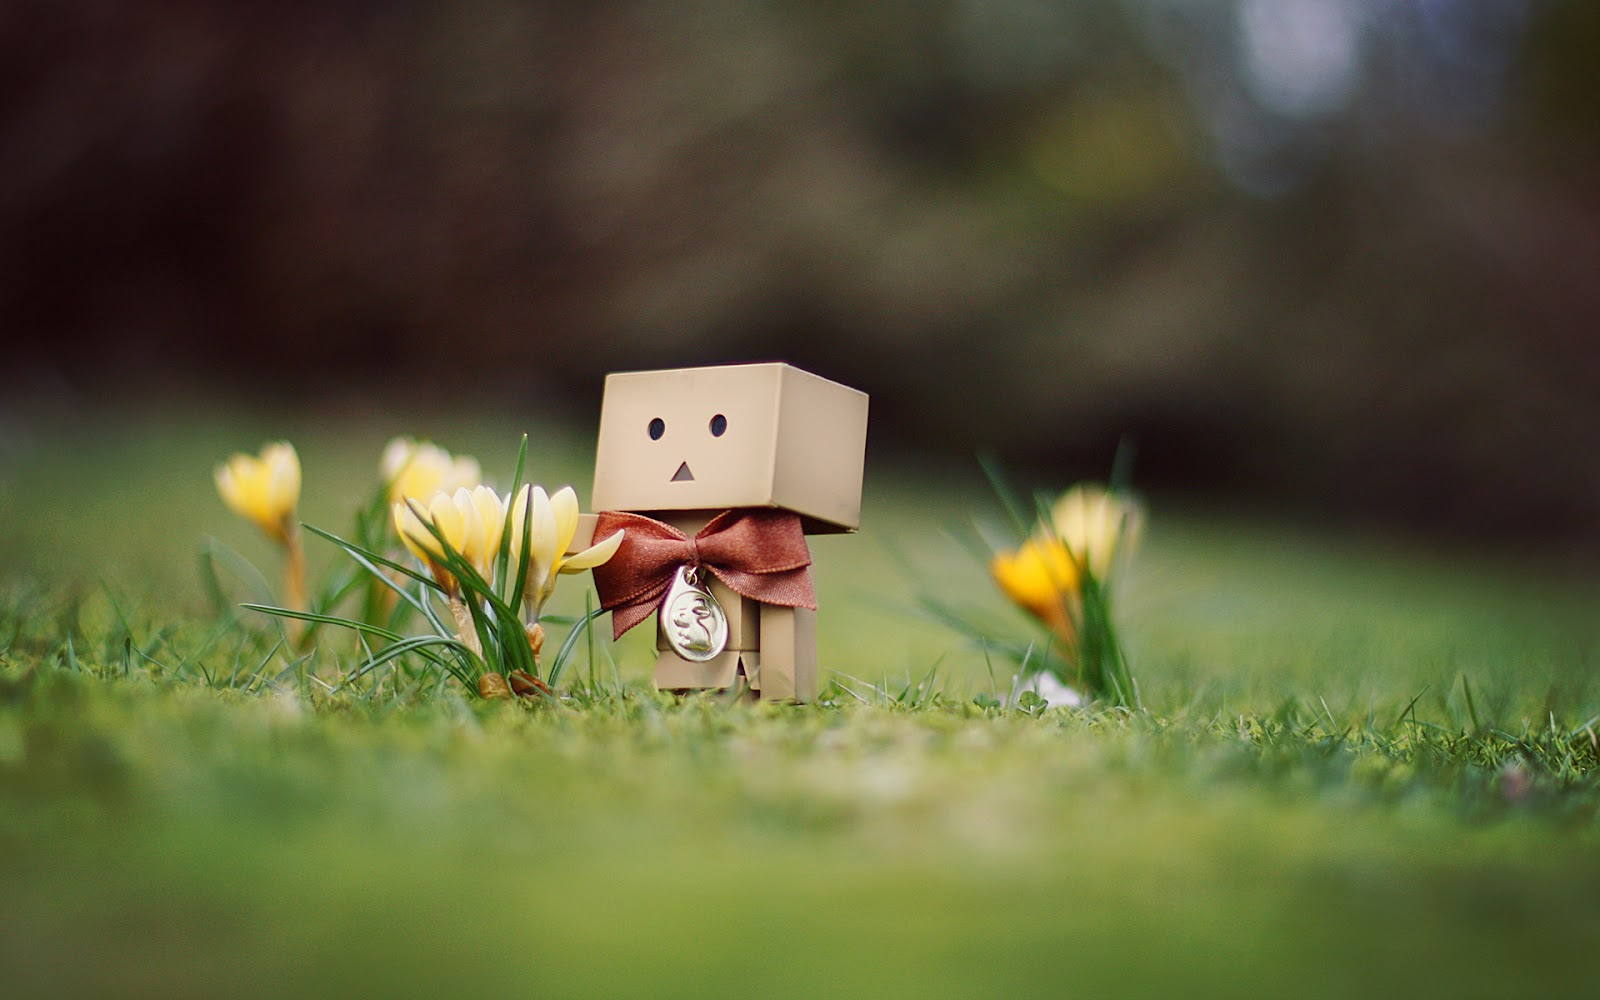 Cute Robot Love Wallpaper Cute Robot Wallpaper |...